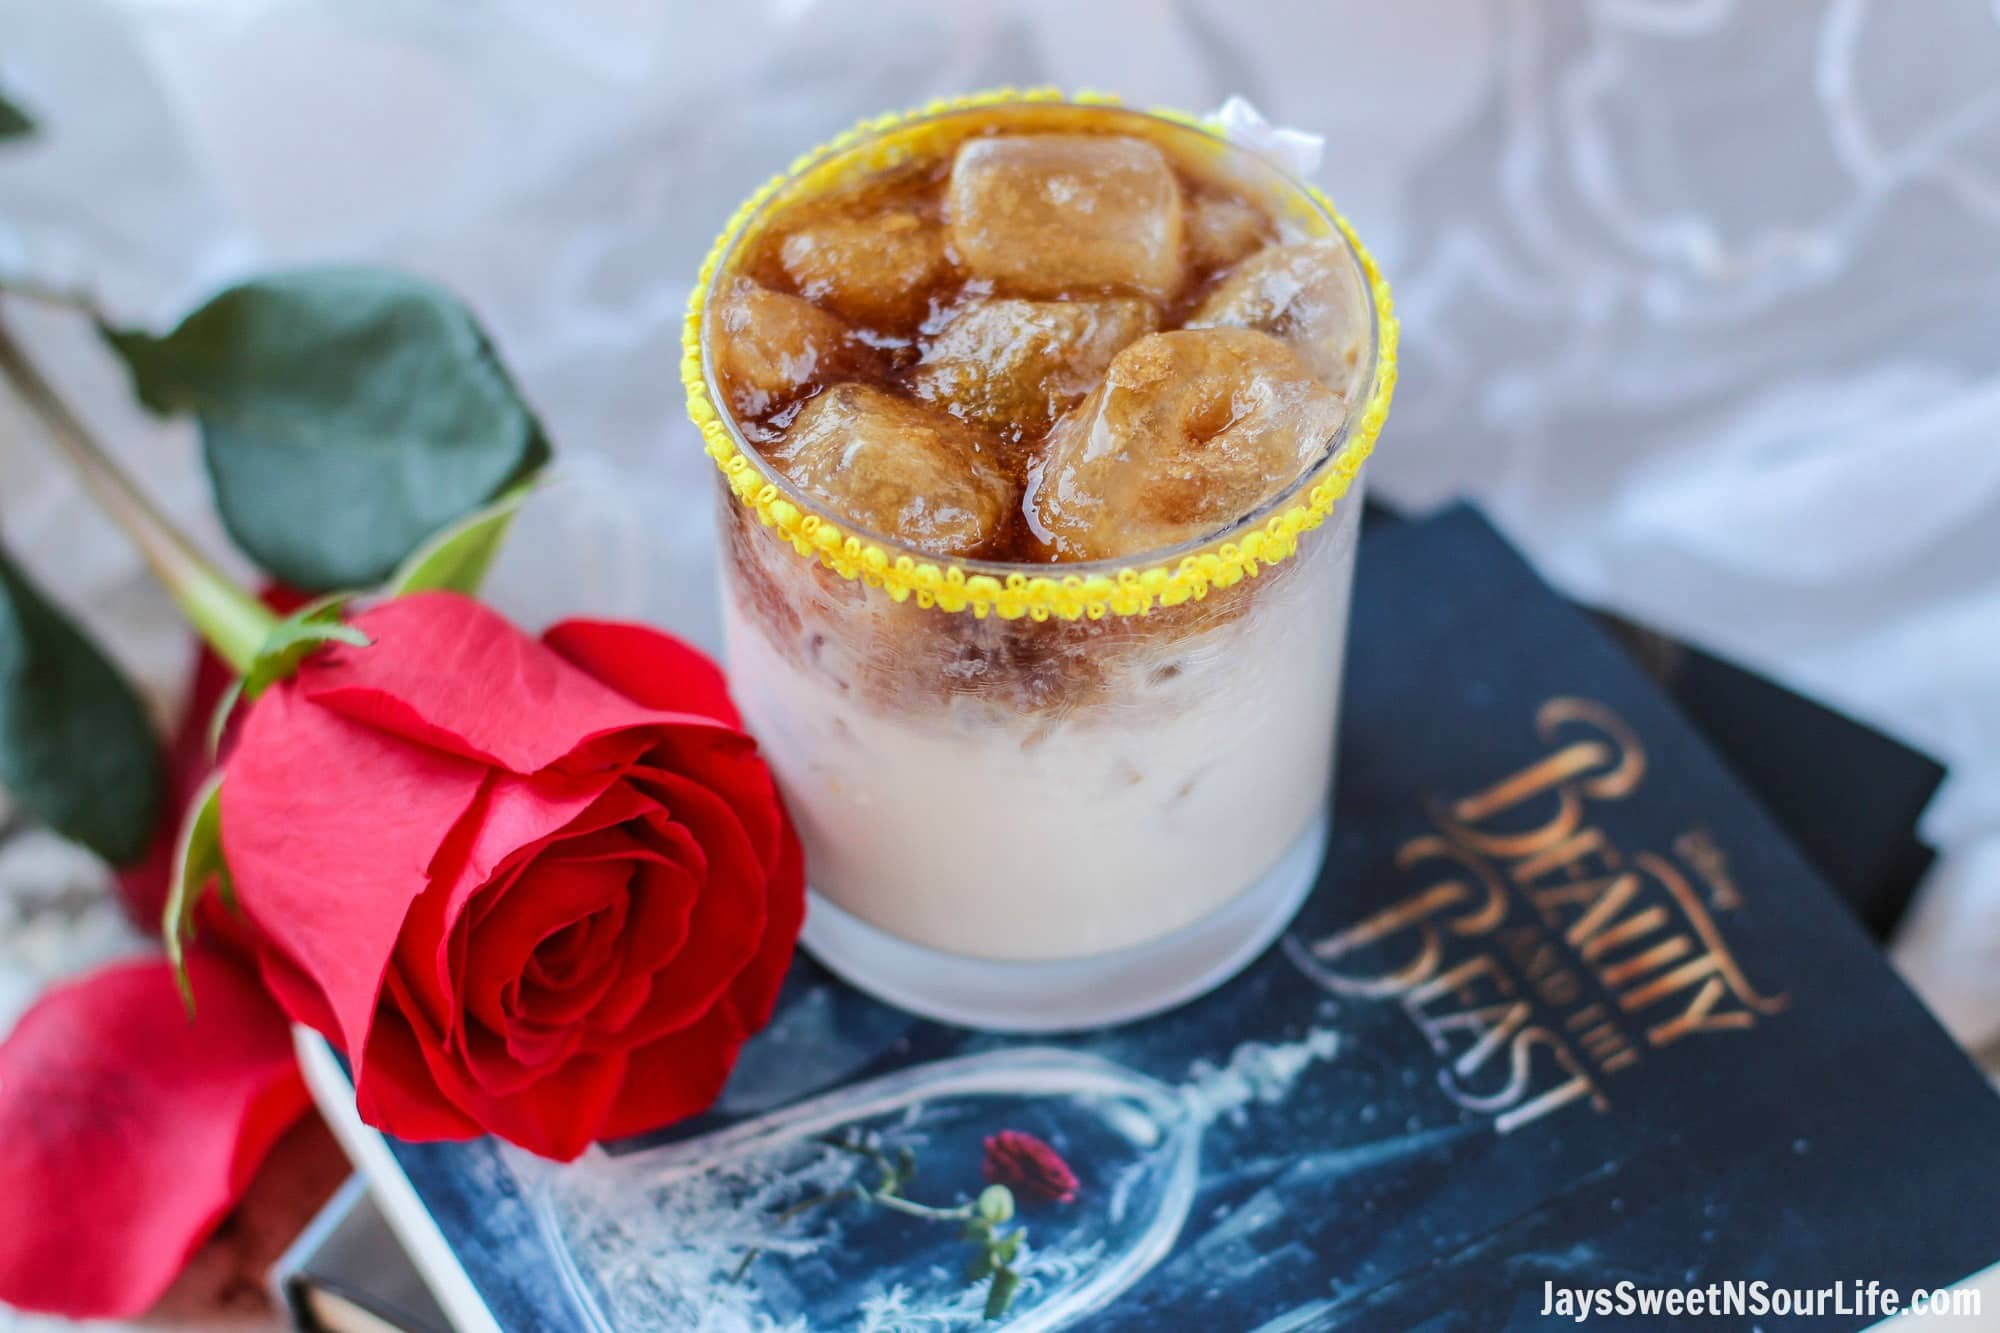 Easy Beauty and the Beast Cocktail. Break the curse with this Disney inspired Beauty and the Beast Cocktail. Made with layers of Kringle Cream Liqueur and Coffee Soda, this simple but elegant cocktail recipe delivers a delicious big flavor.